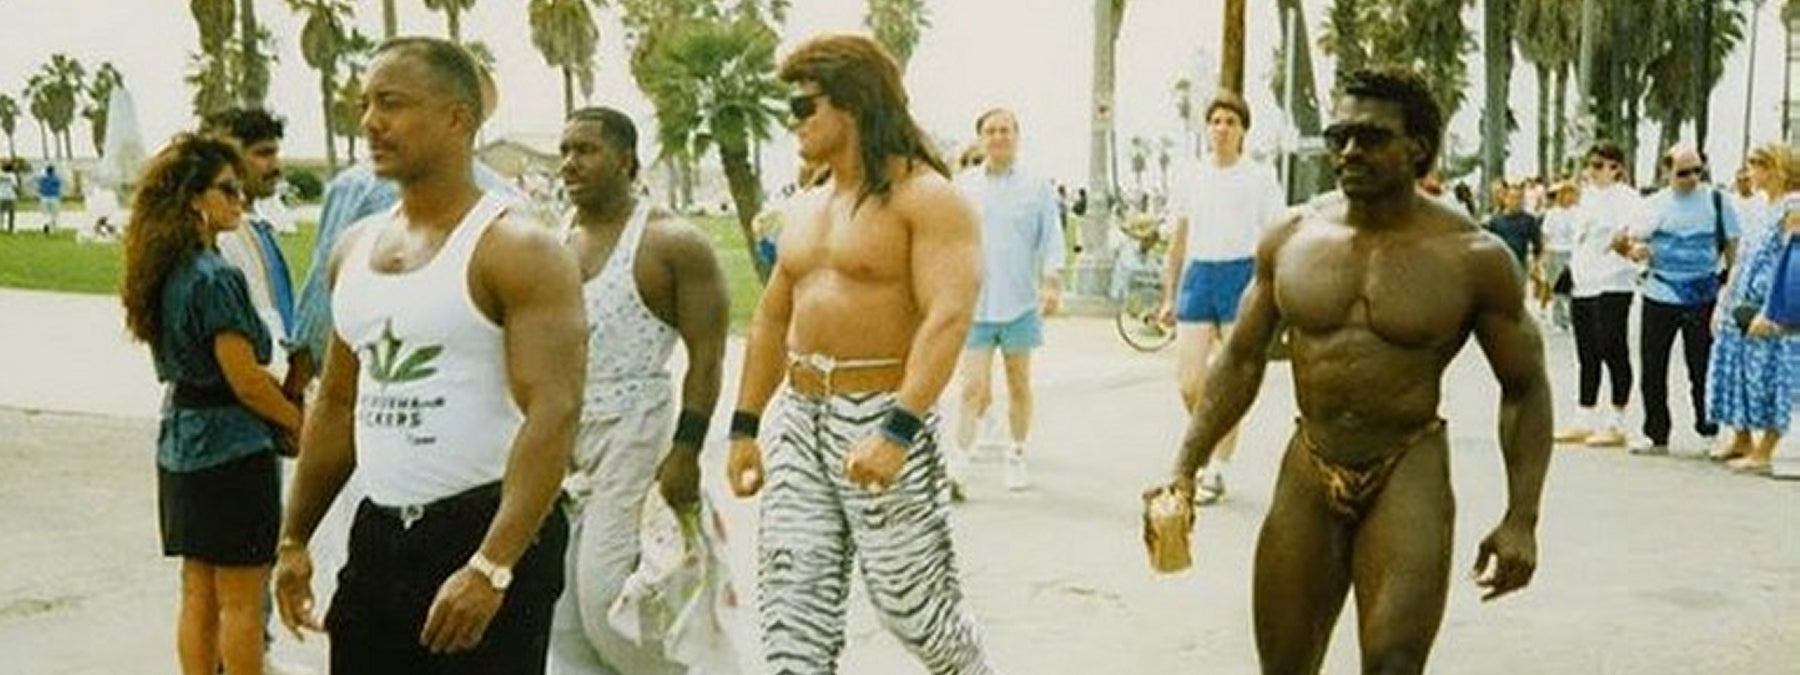 99 Funny & Frightening Bodybuilding Fashion Pics From the 1980s